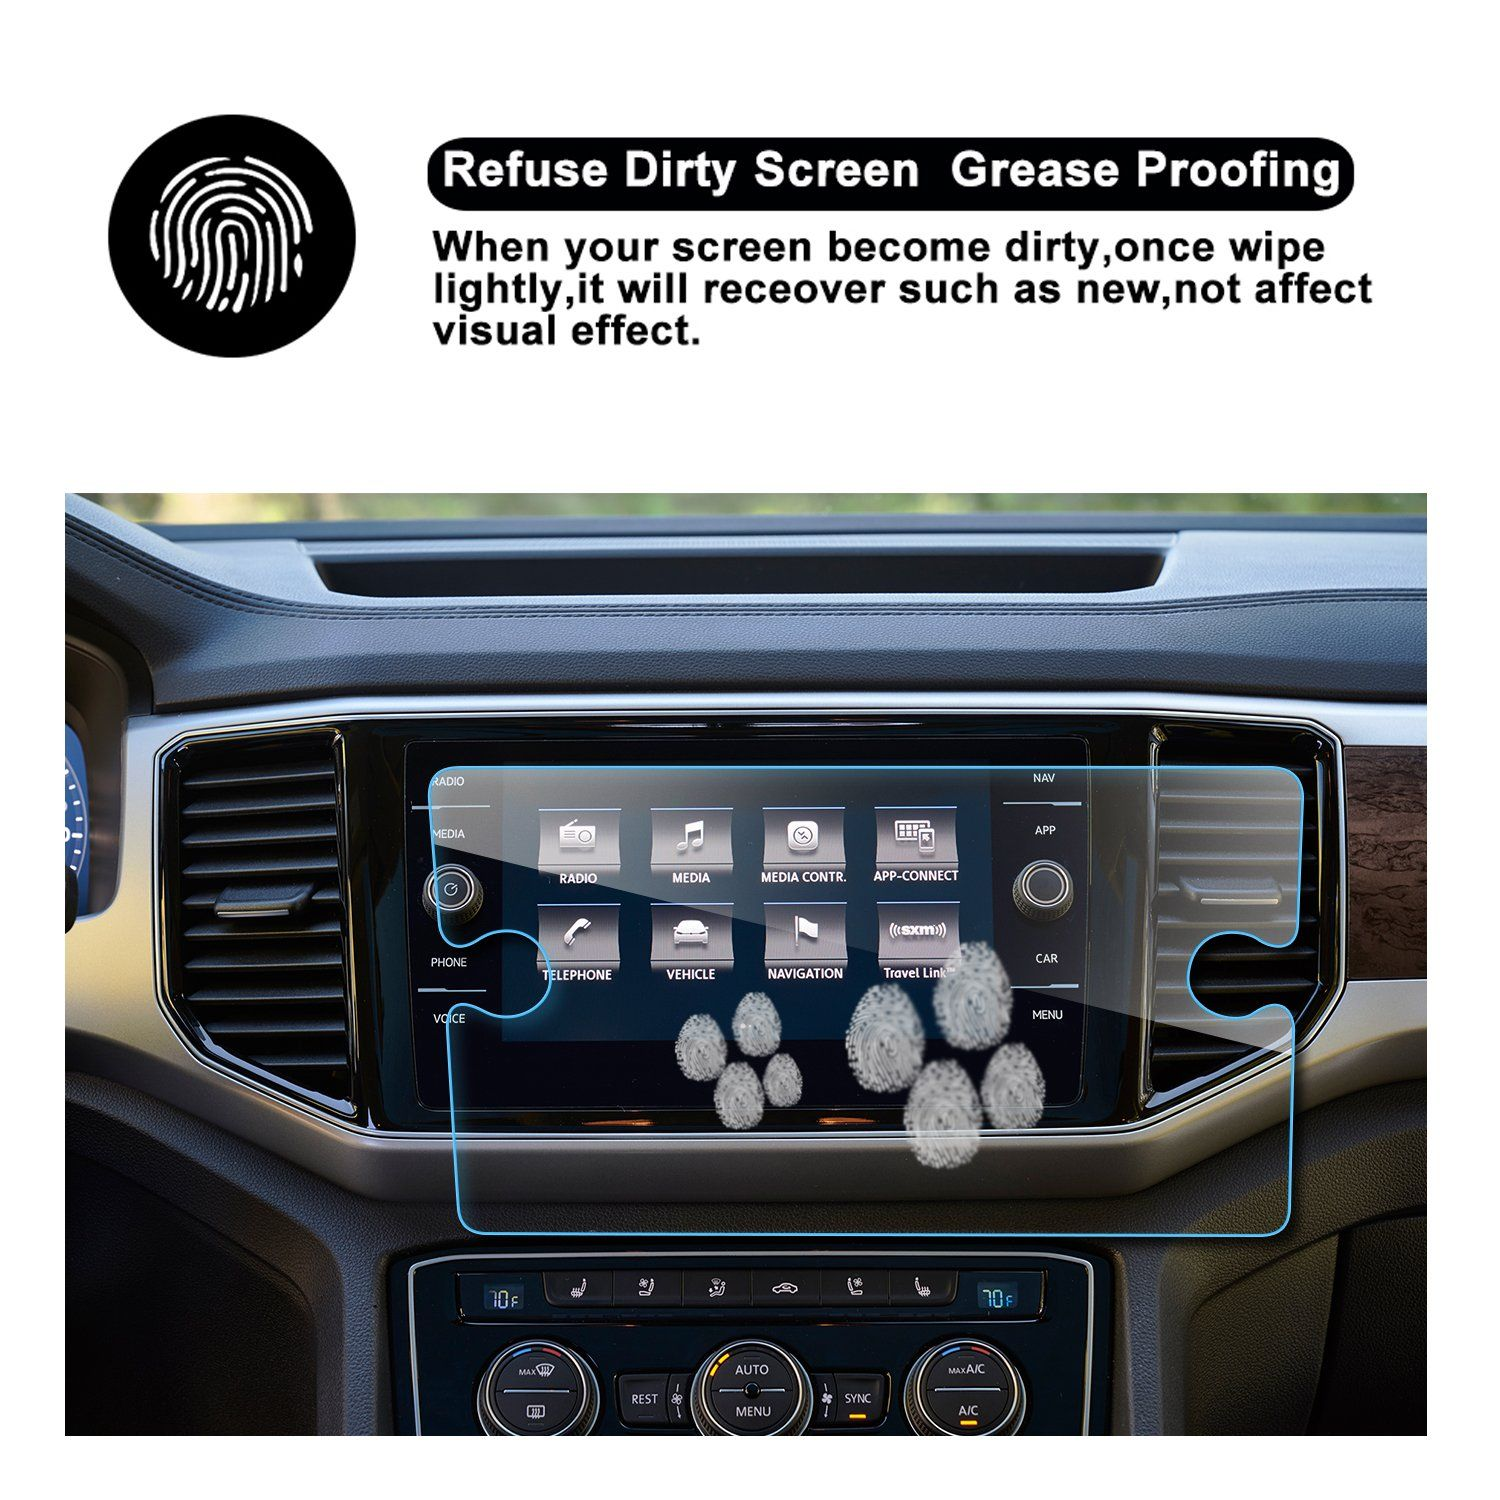 2PCS LFOTPP 8 Inch for 2015-2020 Ford F-150 F250 F350 F450 sync2 sync3 Coupe Hatchback Glass Navigation Screen Protector 9H Tempered Glass Infotainment Center Touch Display Screen Protector